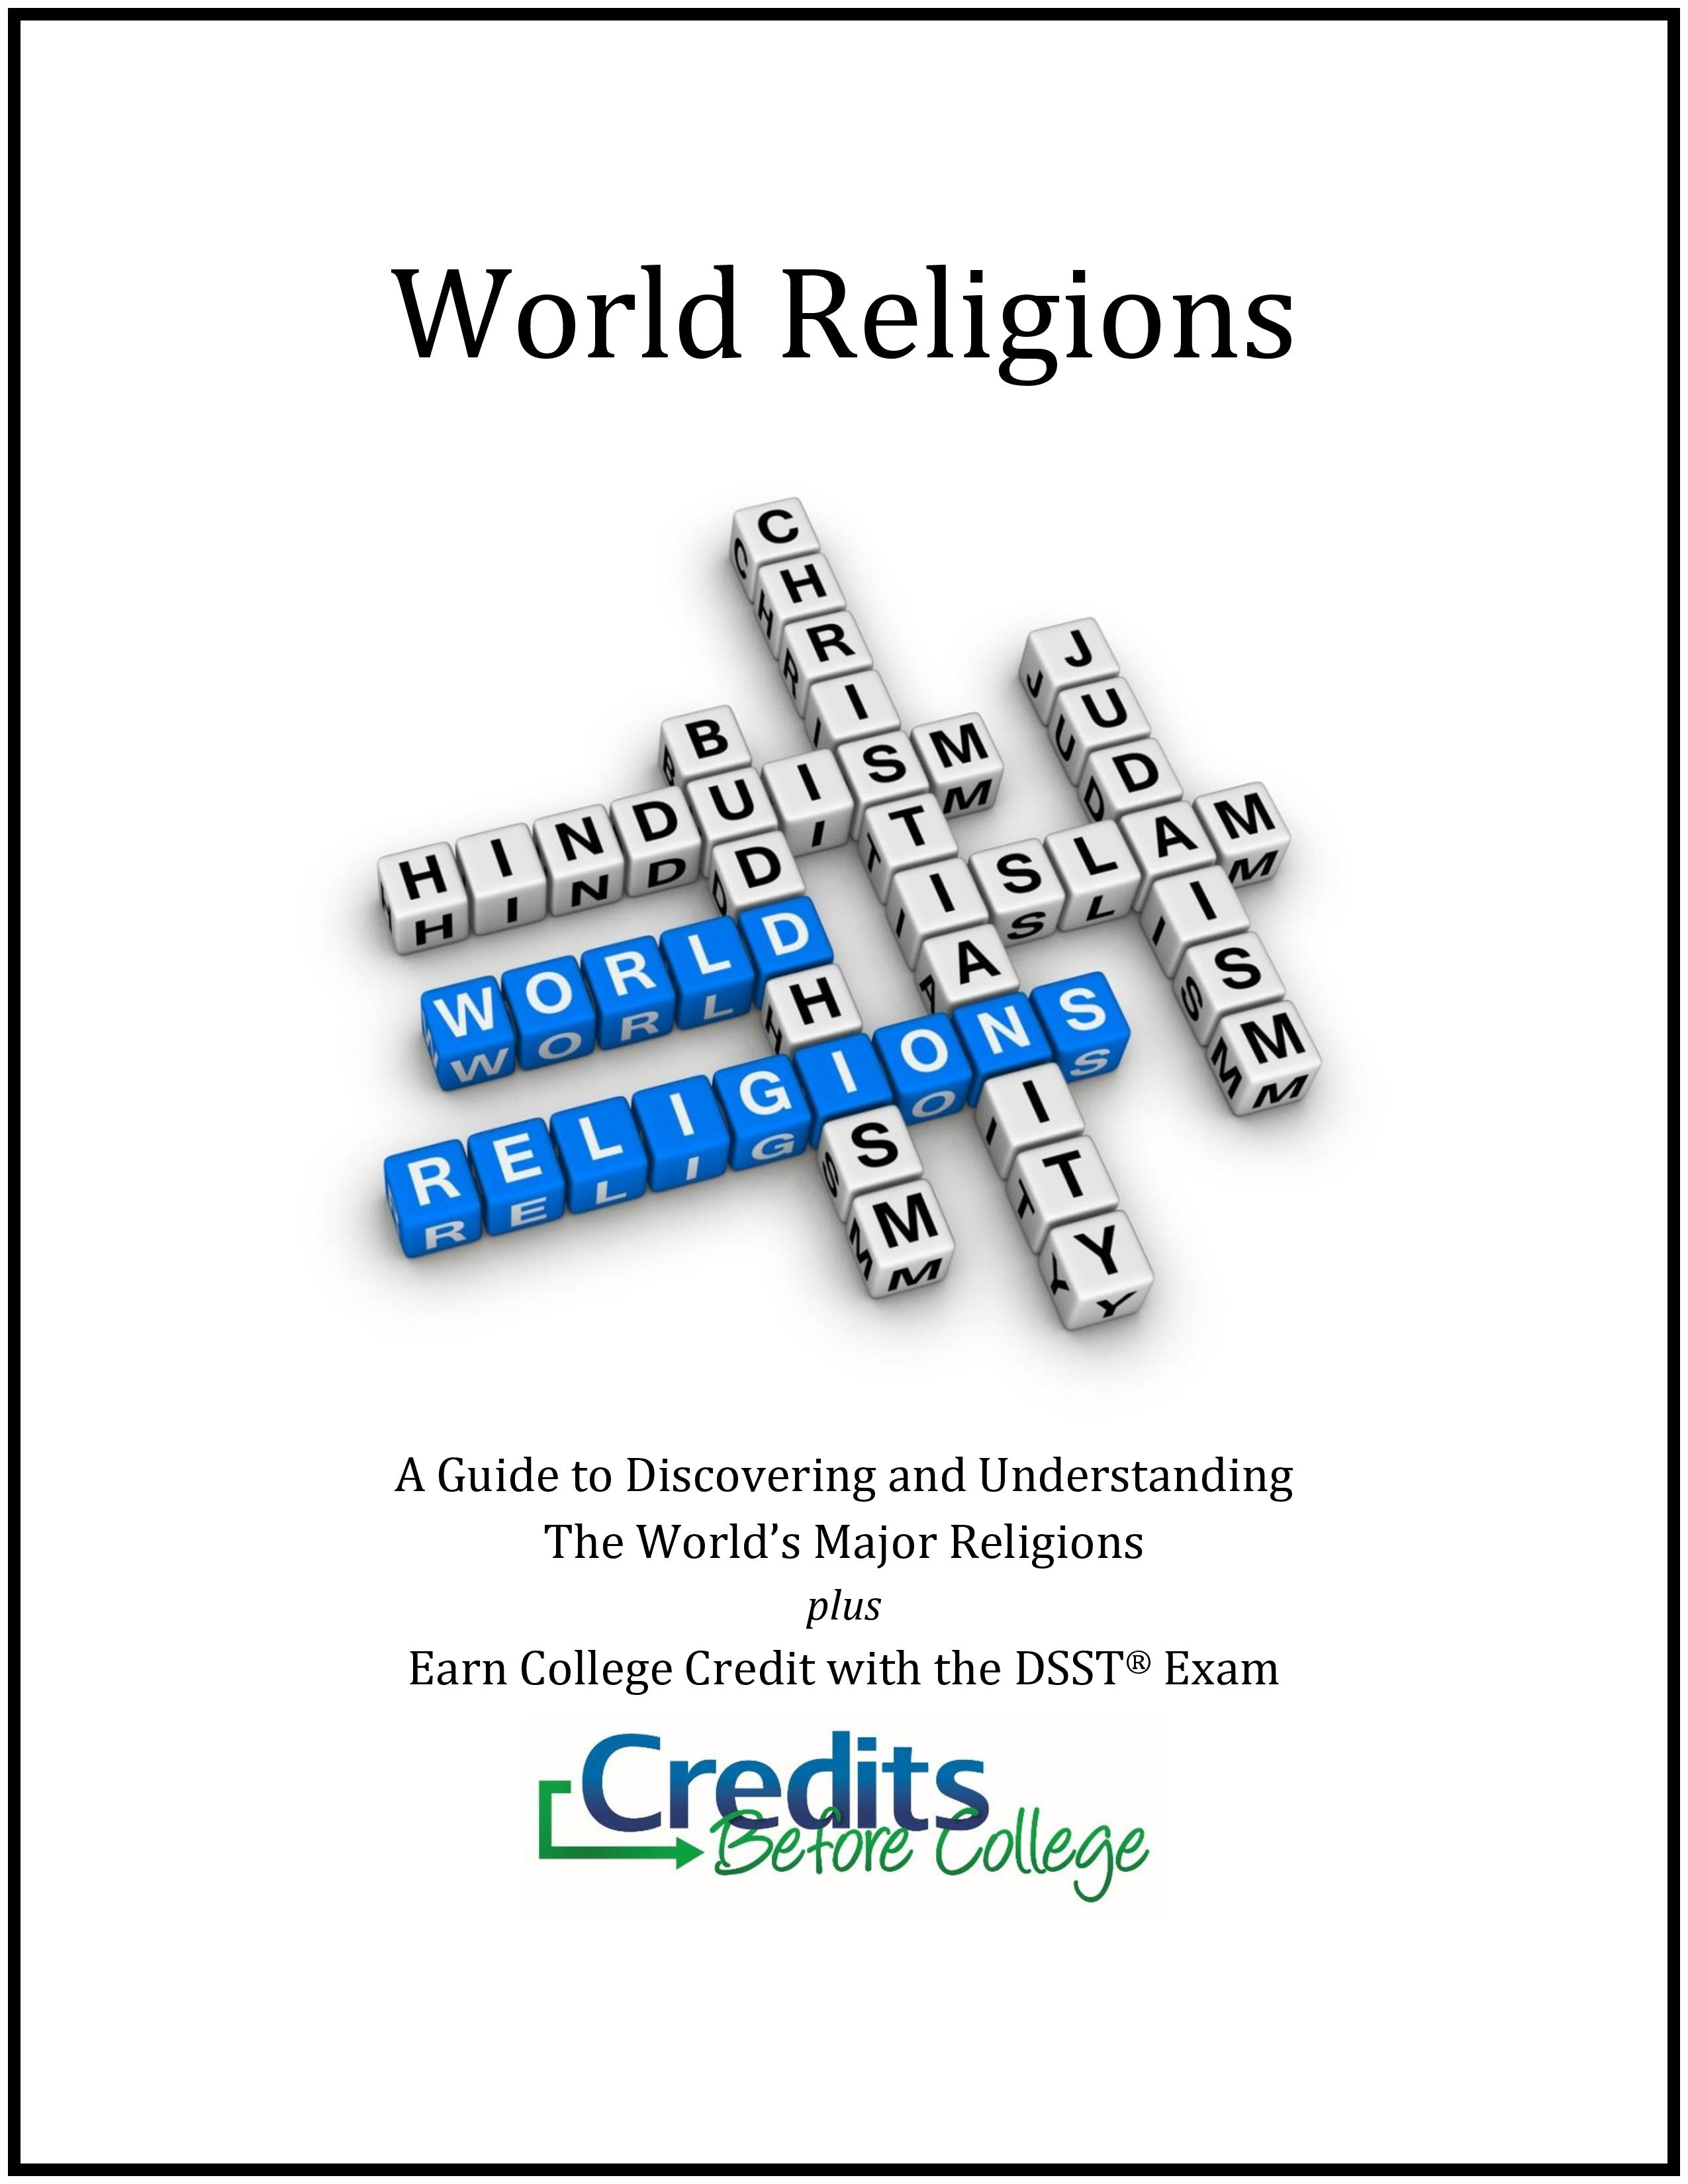 World Religions Course Guide